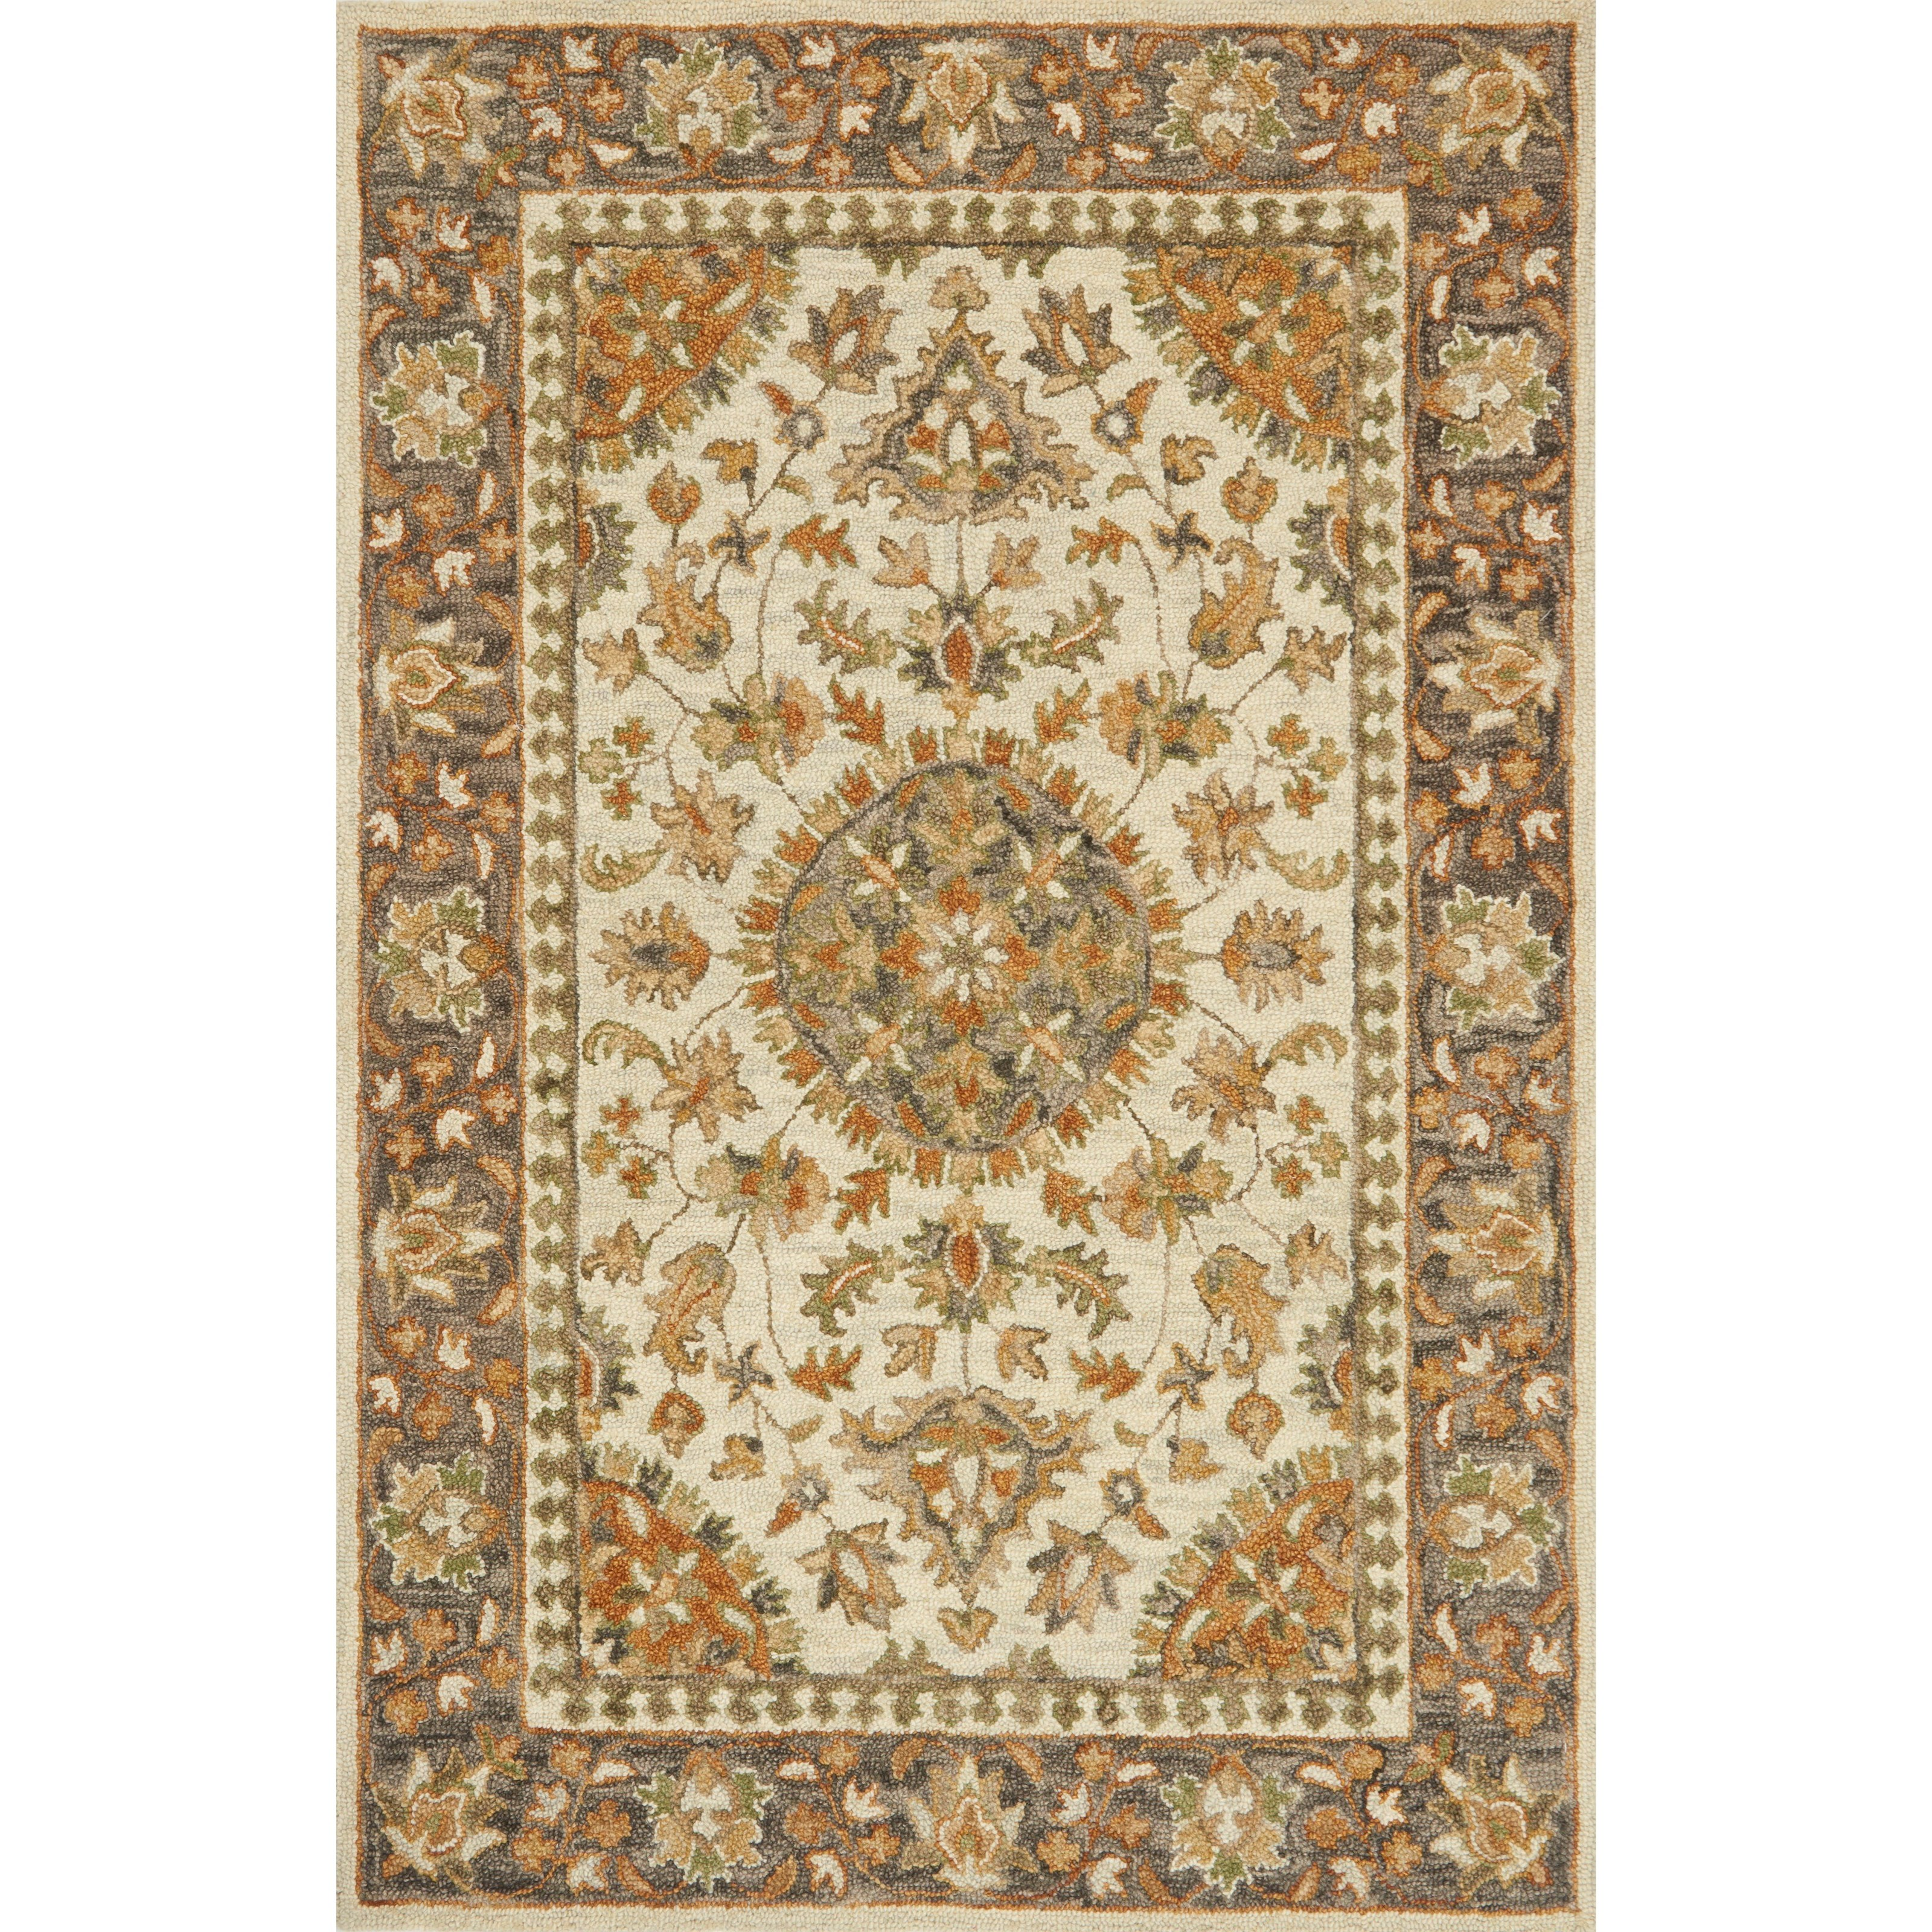 "Victoria 1'6"" x 1'6""  Ivory / Charcoal Rug by Loloi Rugs at Virginia Furniture Market"